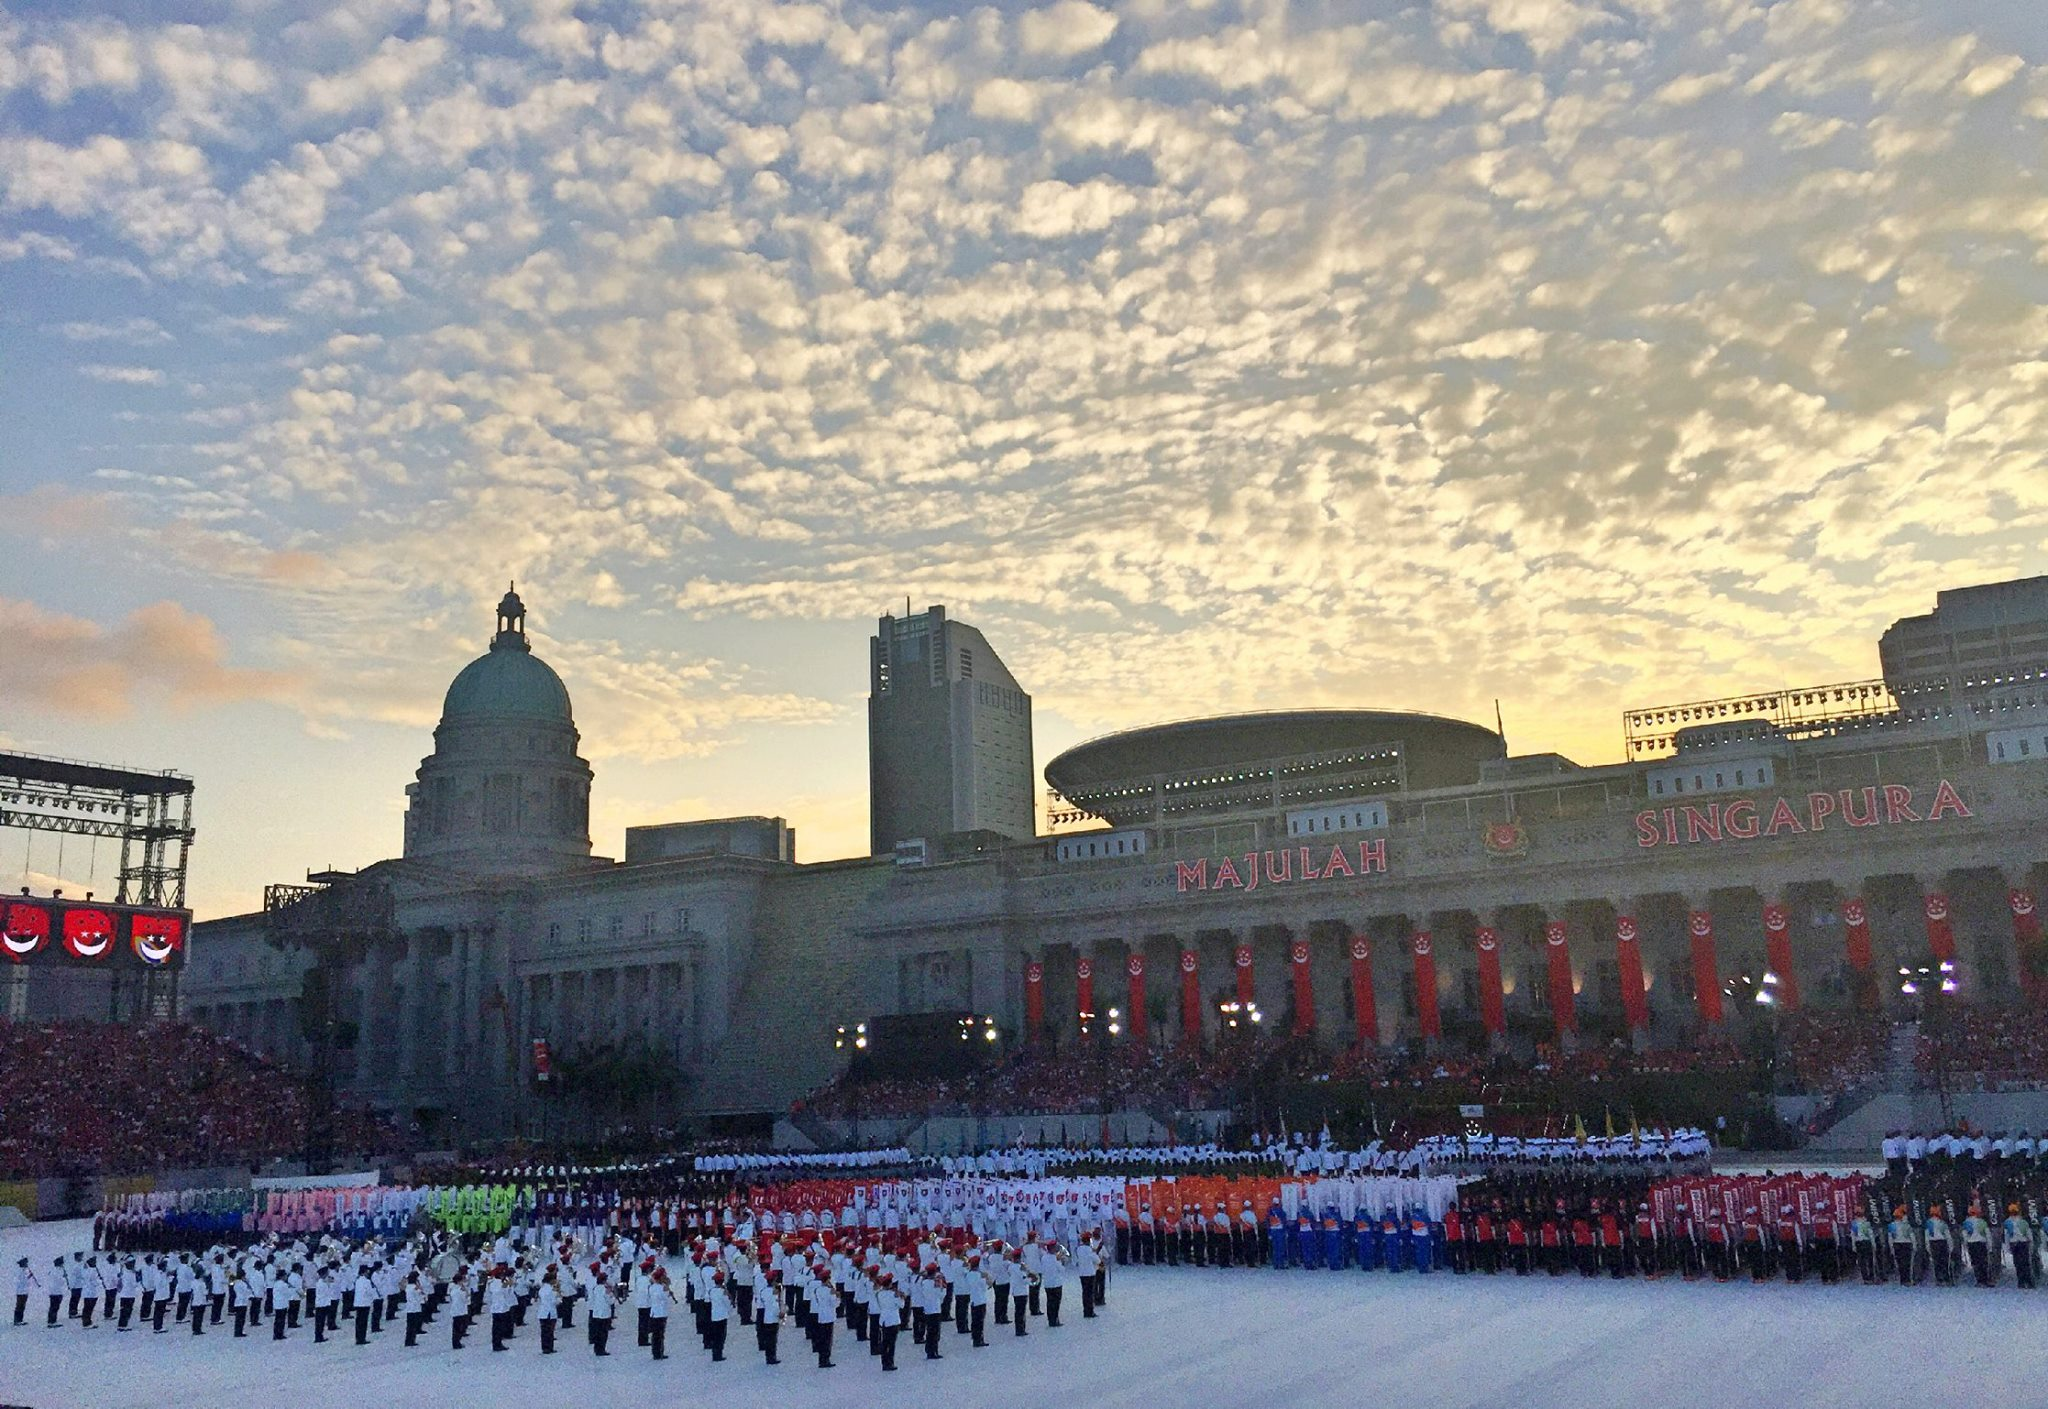 Photo of Singapore's 50th Jubillee Dress Rehearsal, found on PM Lee Hsien Loong's Facebook page, courtesy of Dr. Yuen Siu Mun)